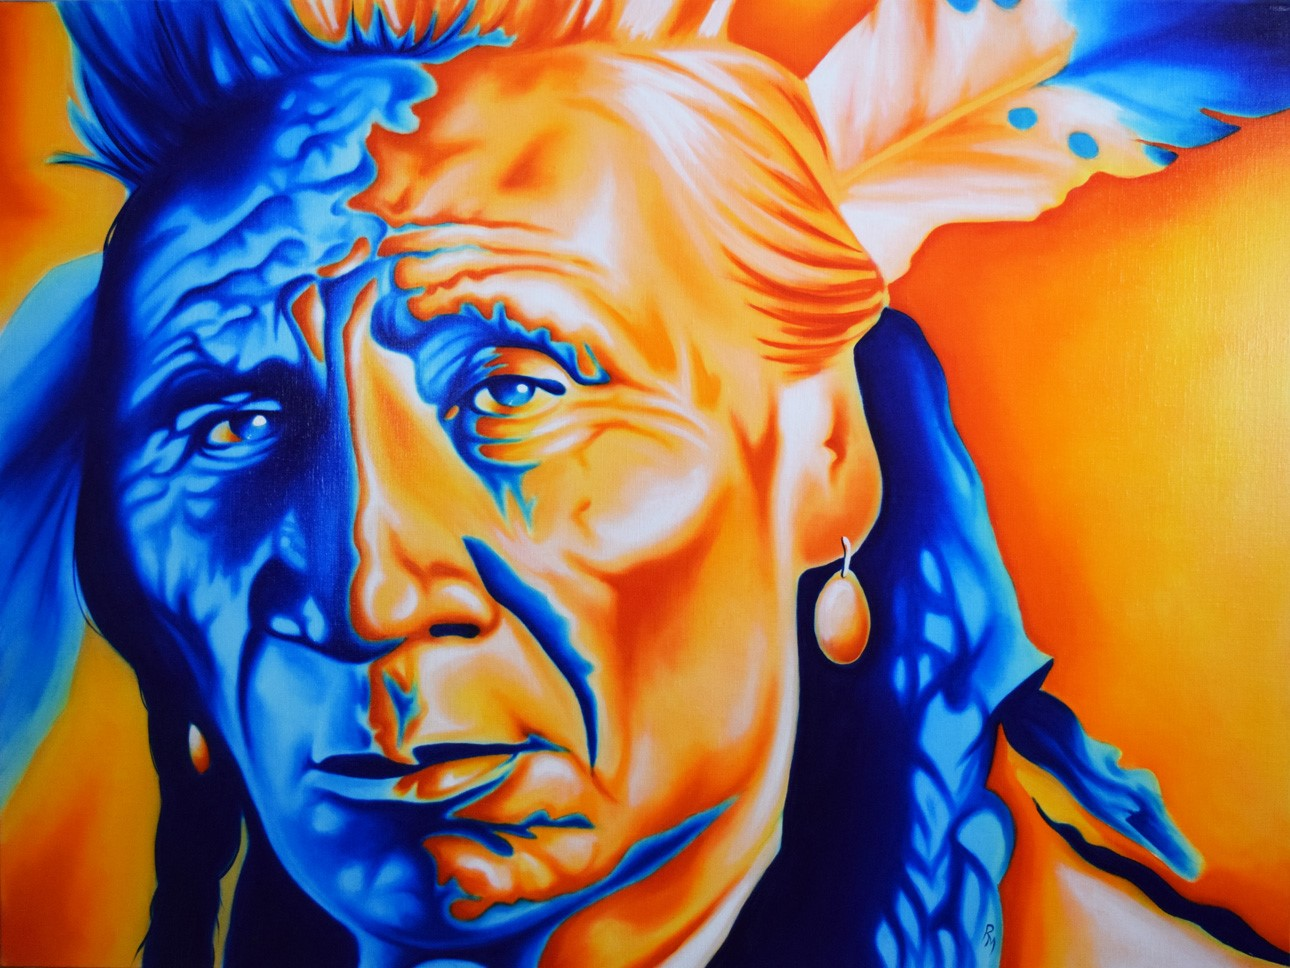 Colorful portrait of traditional Native American male